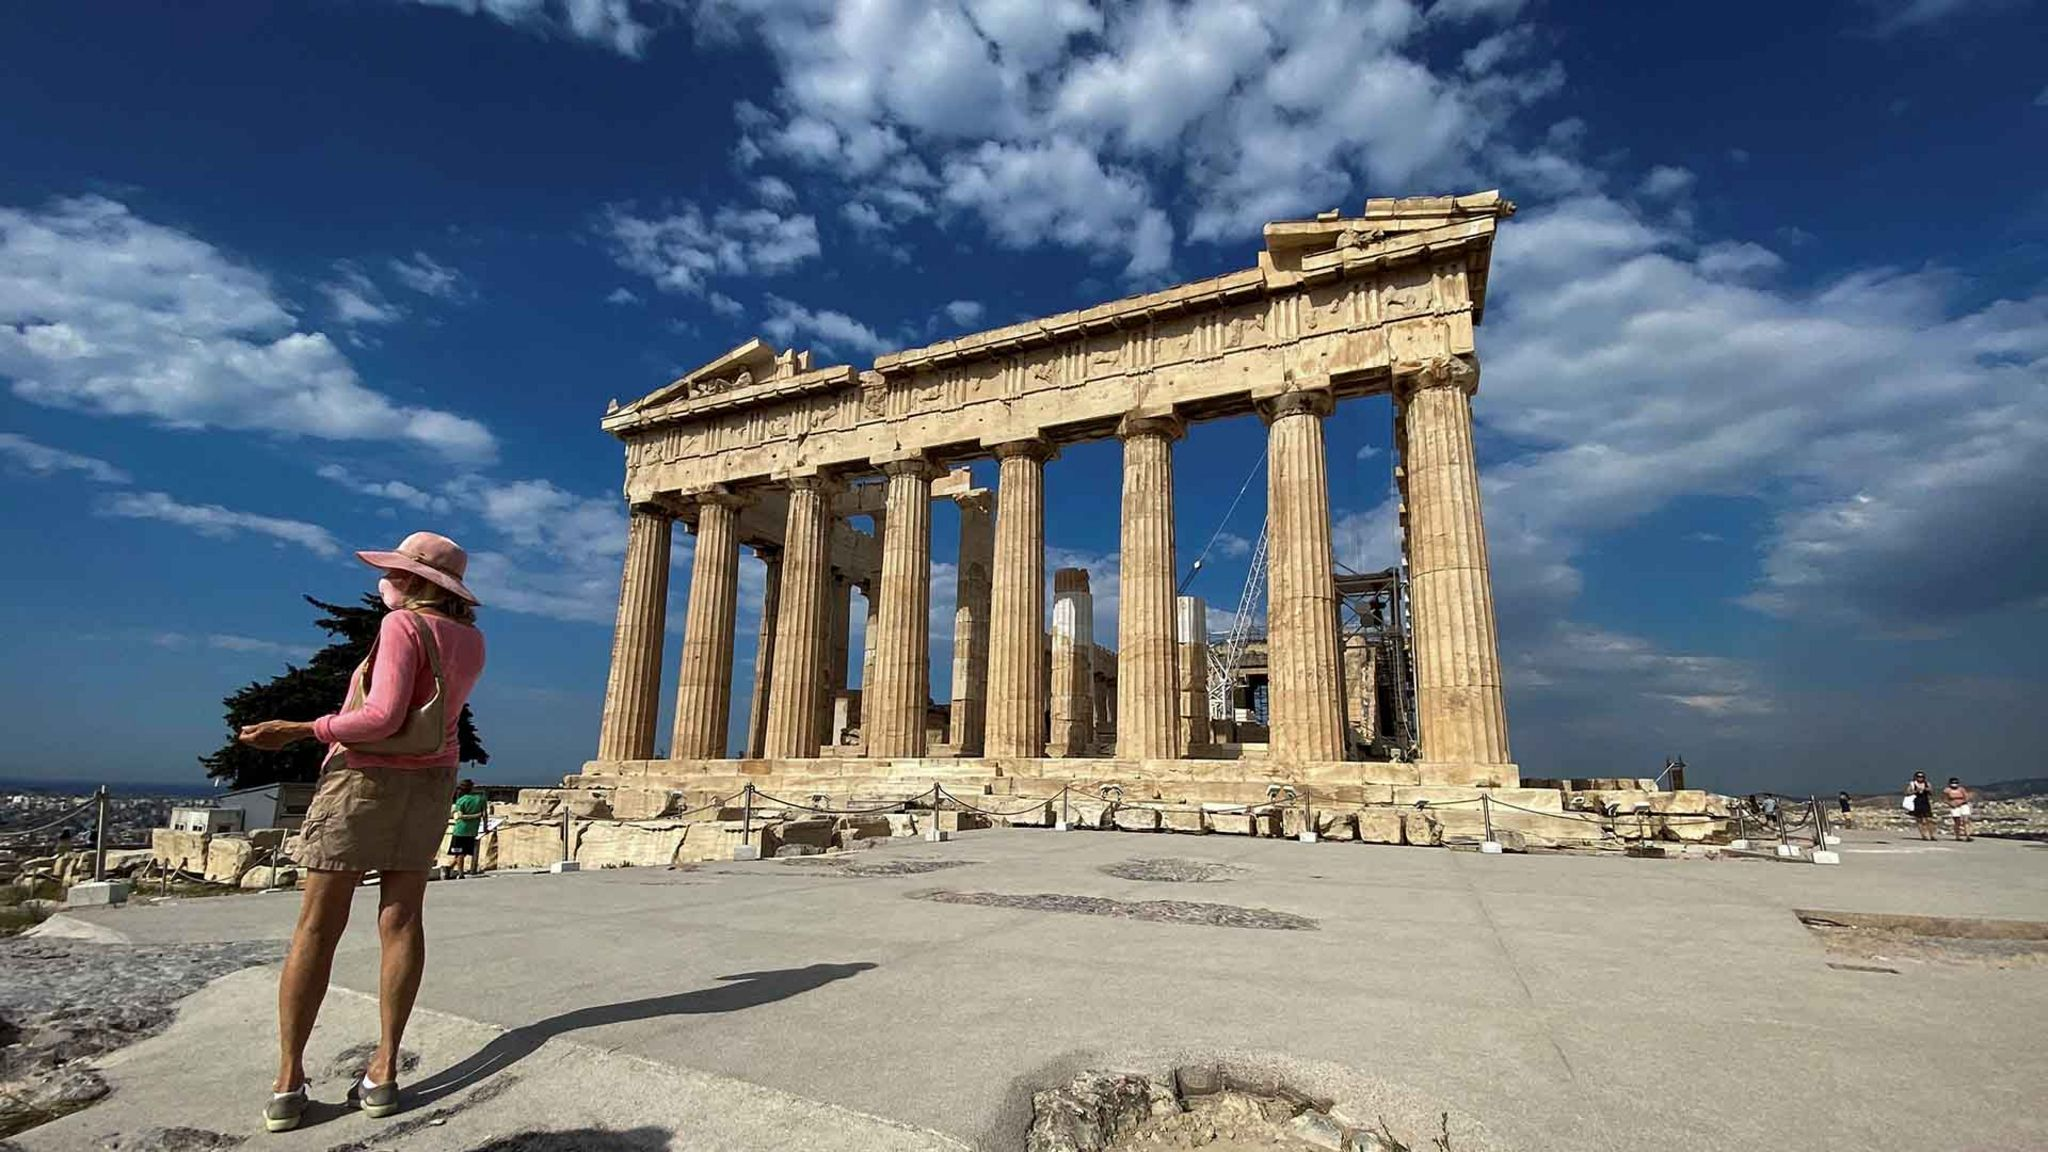 Tourist stands by the Parthenon in Athens